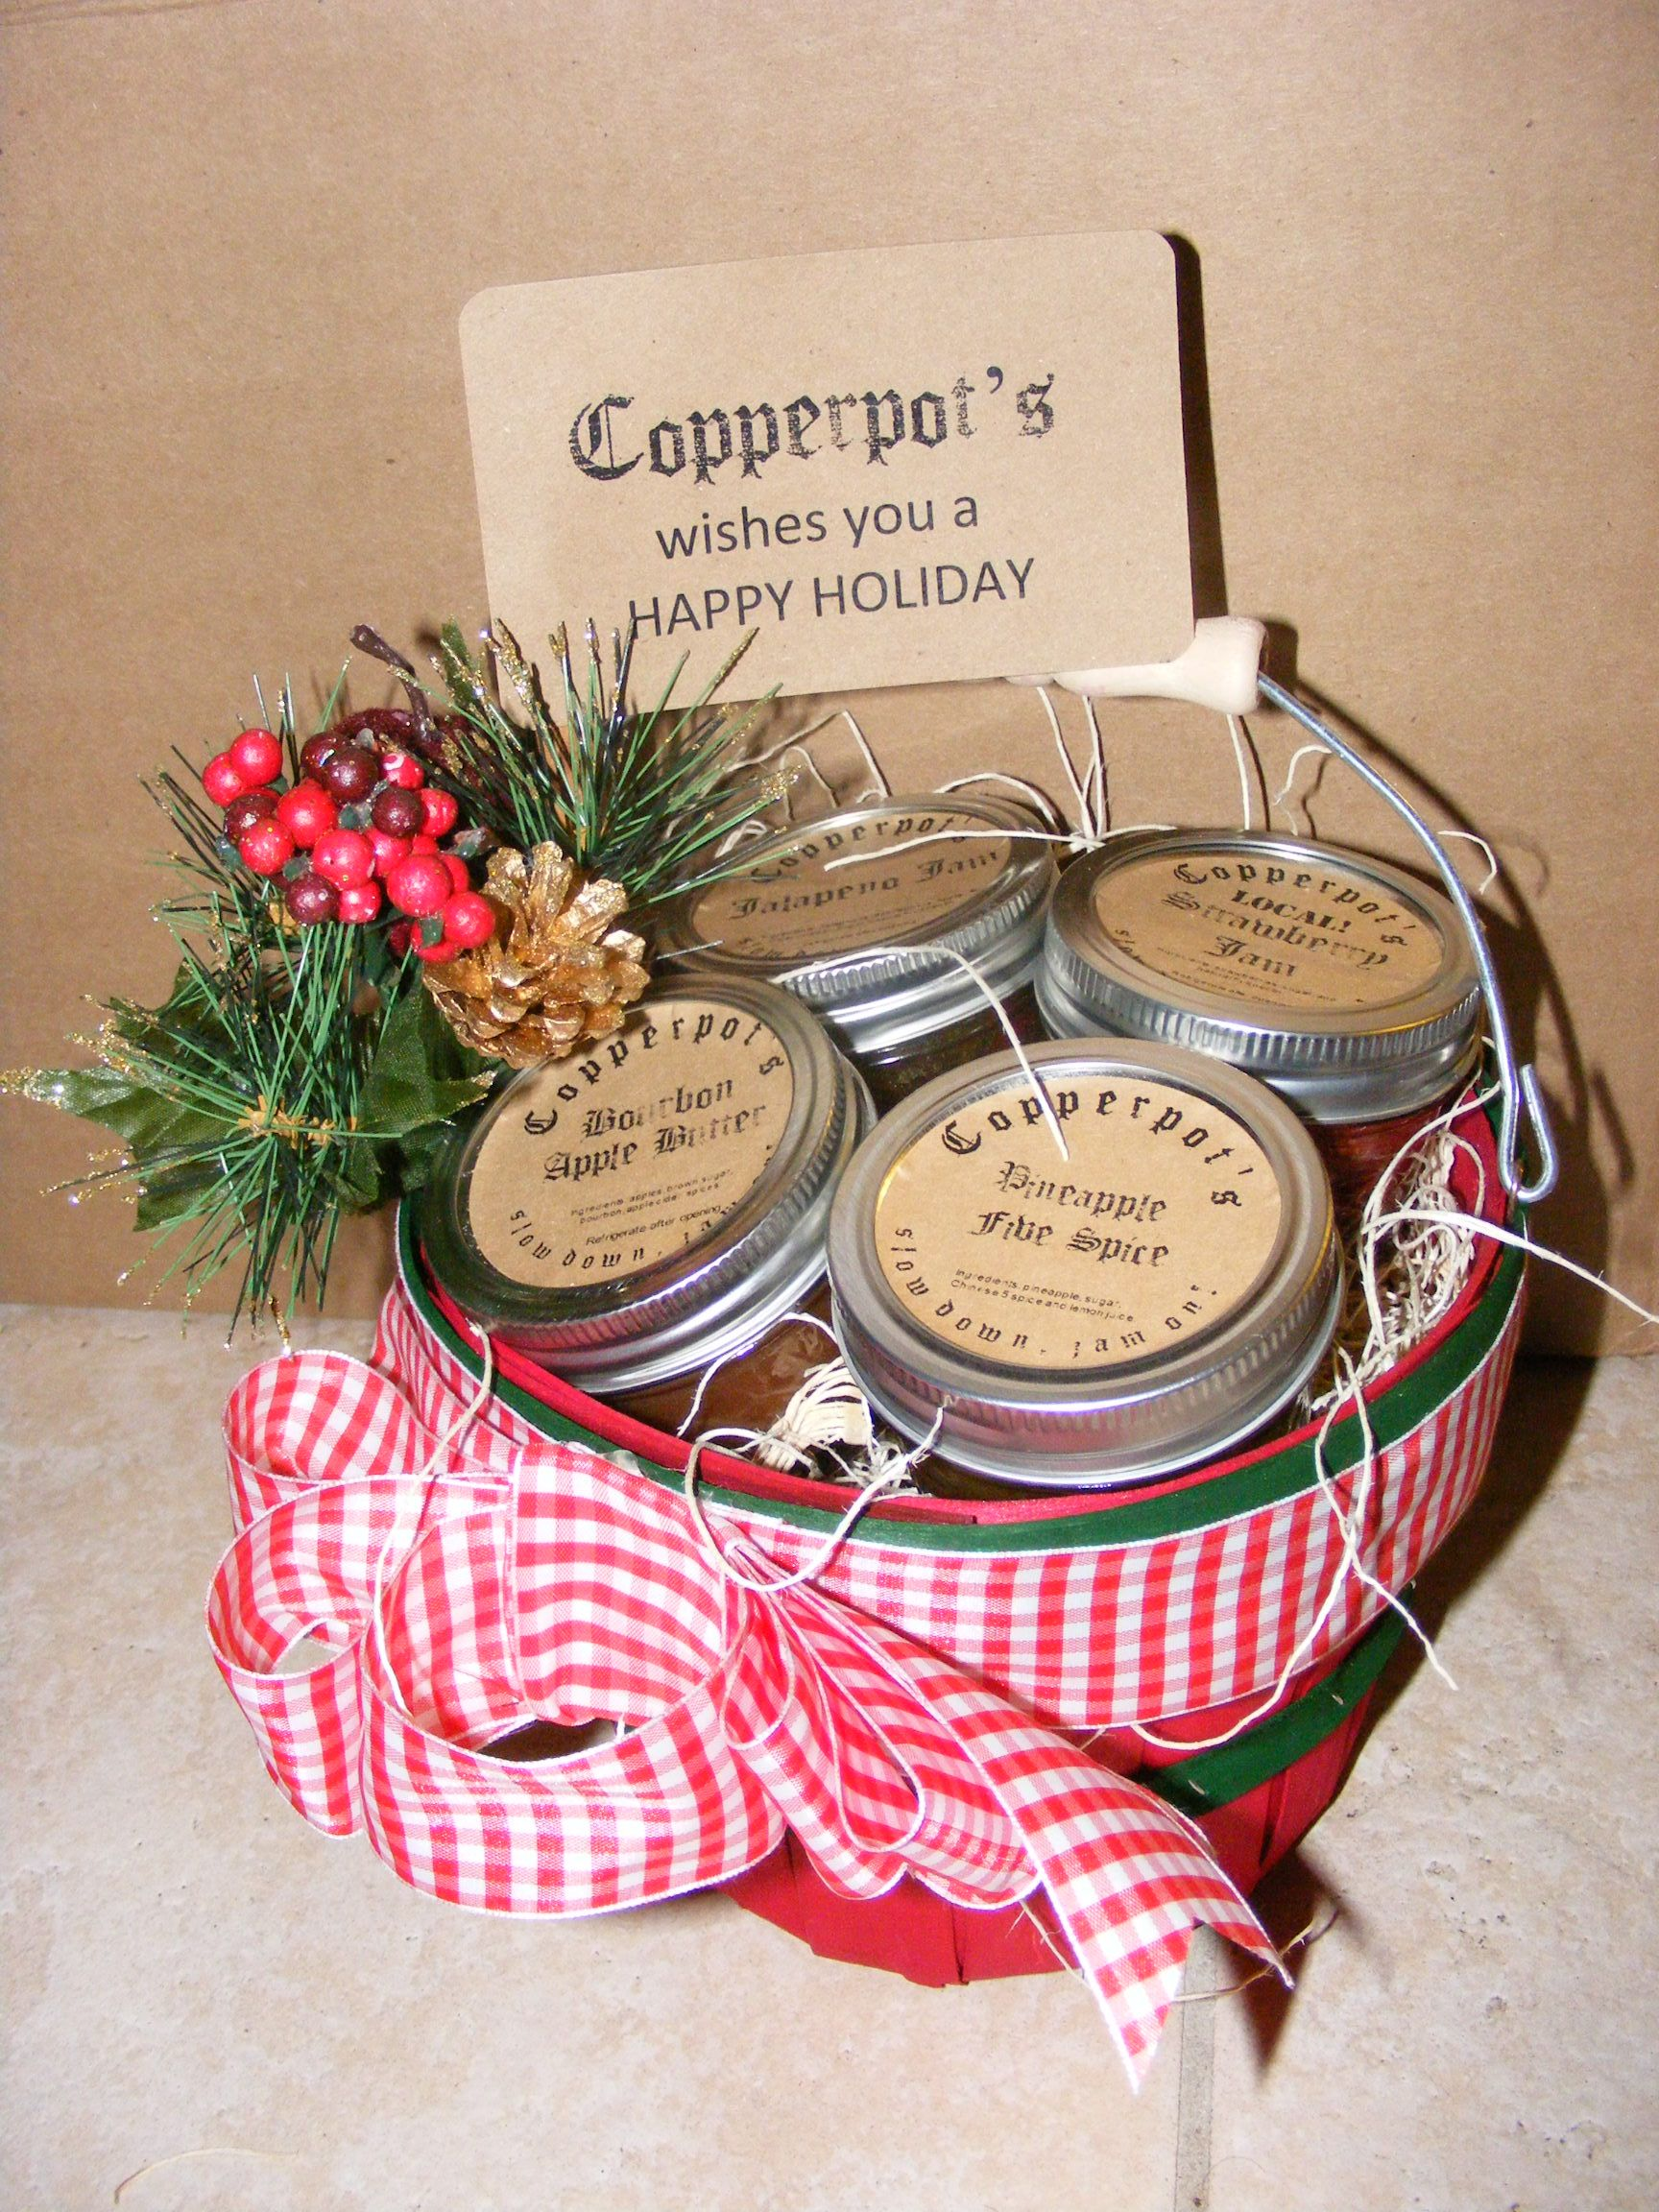 Copperpots homemade jam gift basket copperpots pinterest copperpots homemade jam gift basket creative gift basketscreative giftschristmas basketsneighbor negle Images